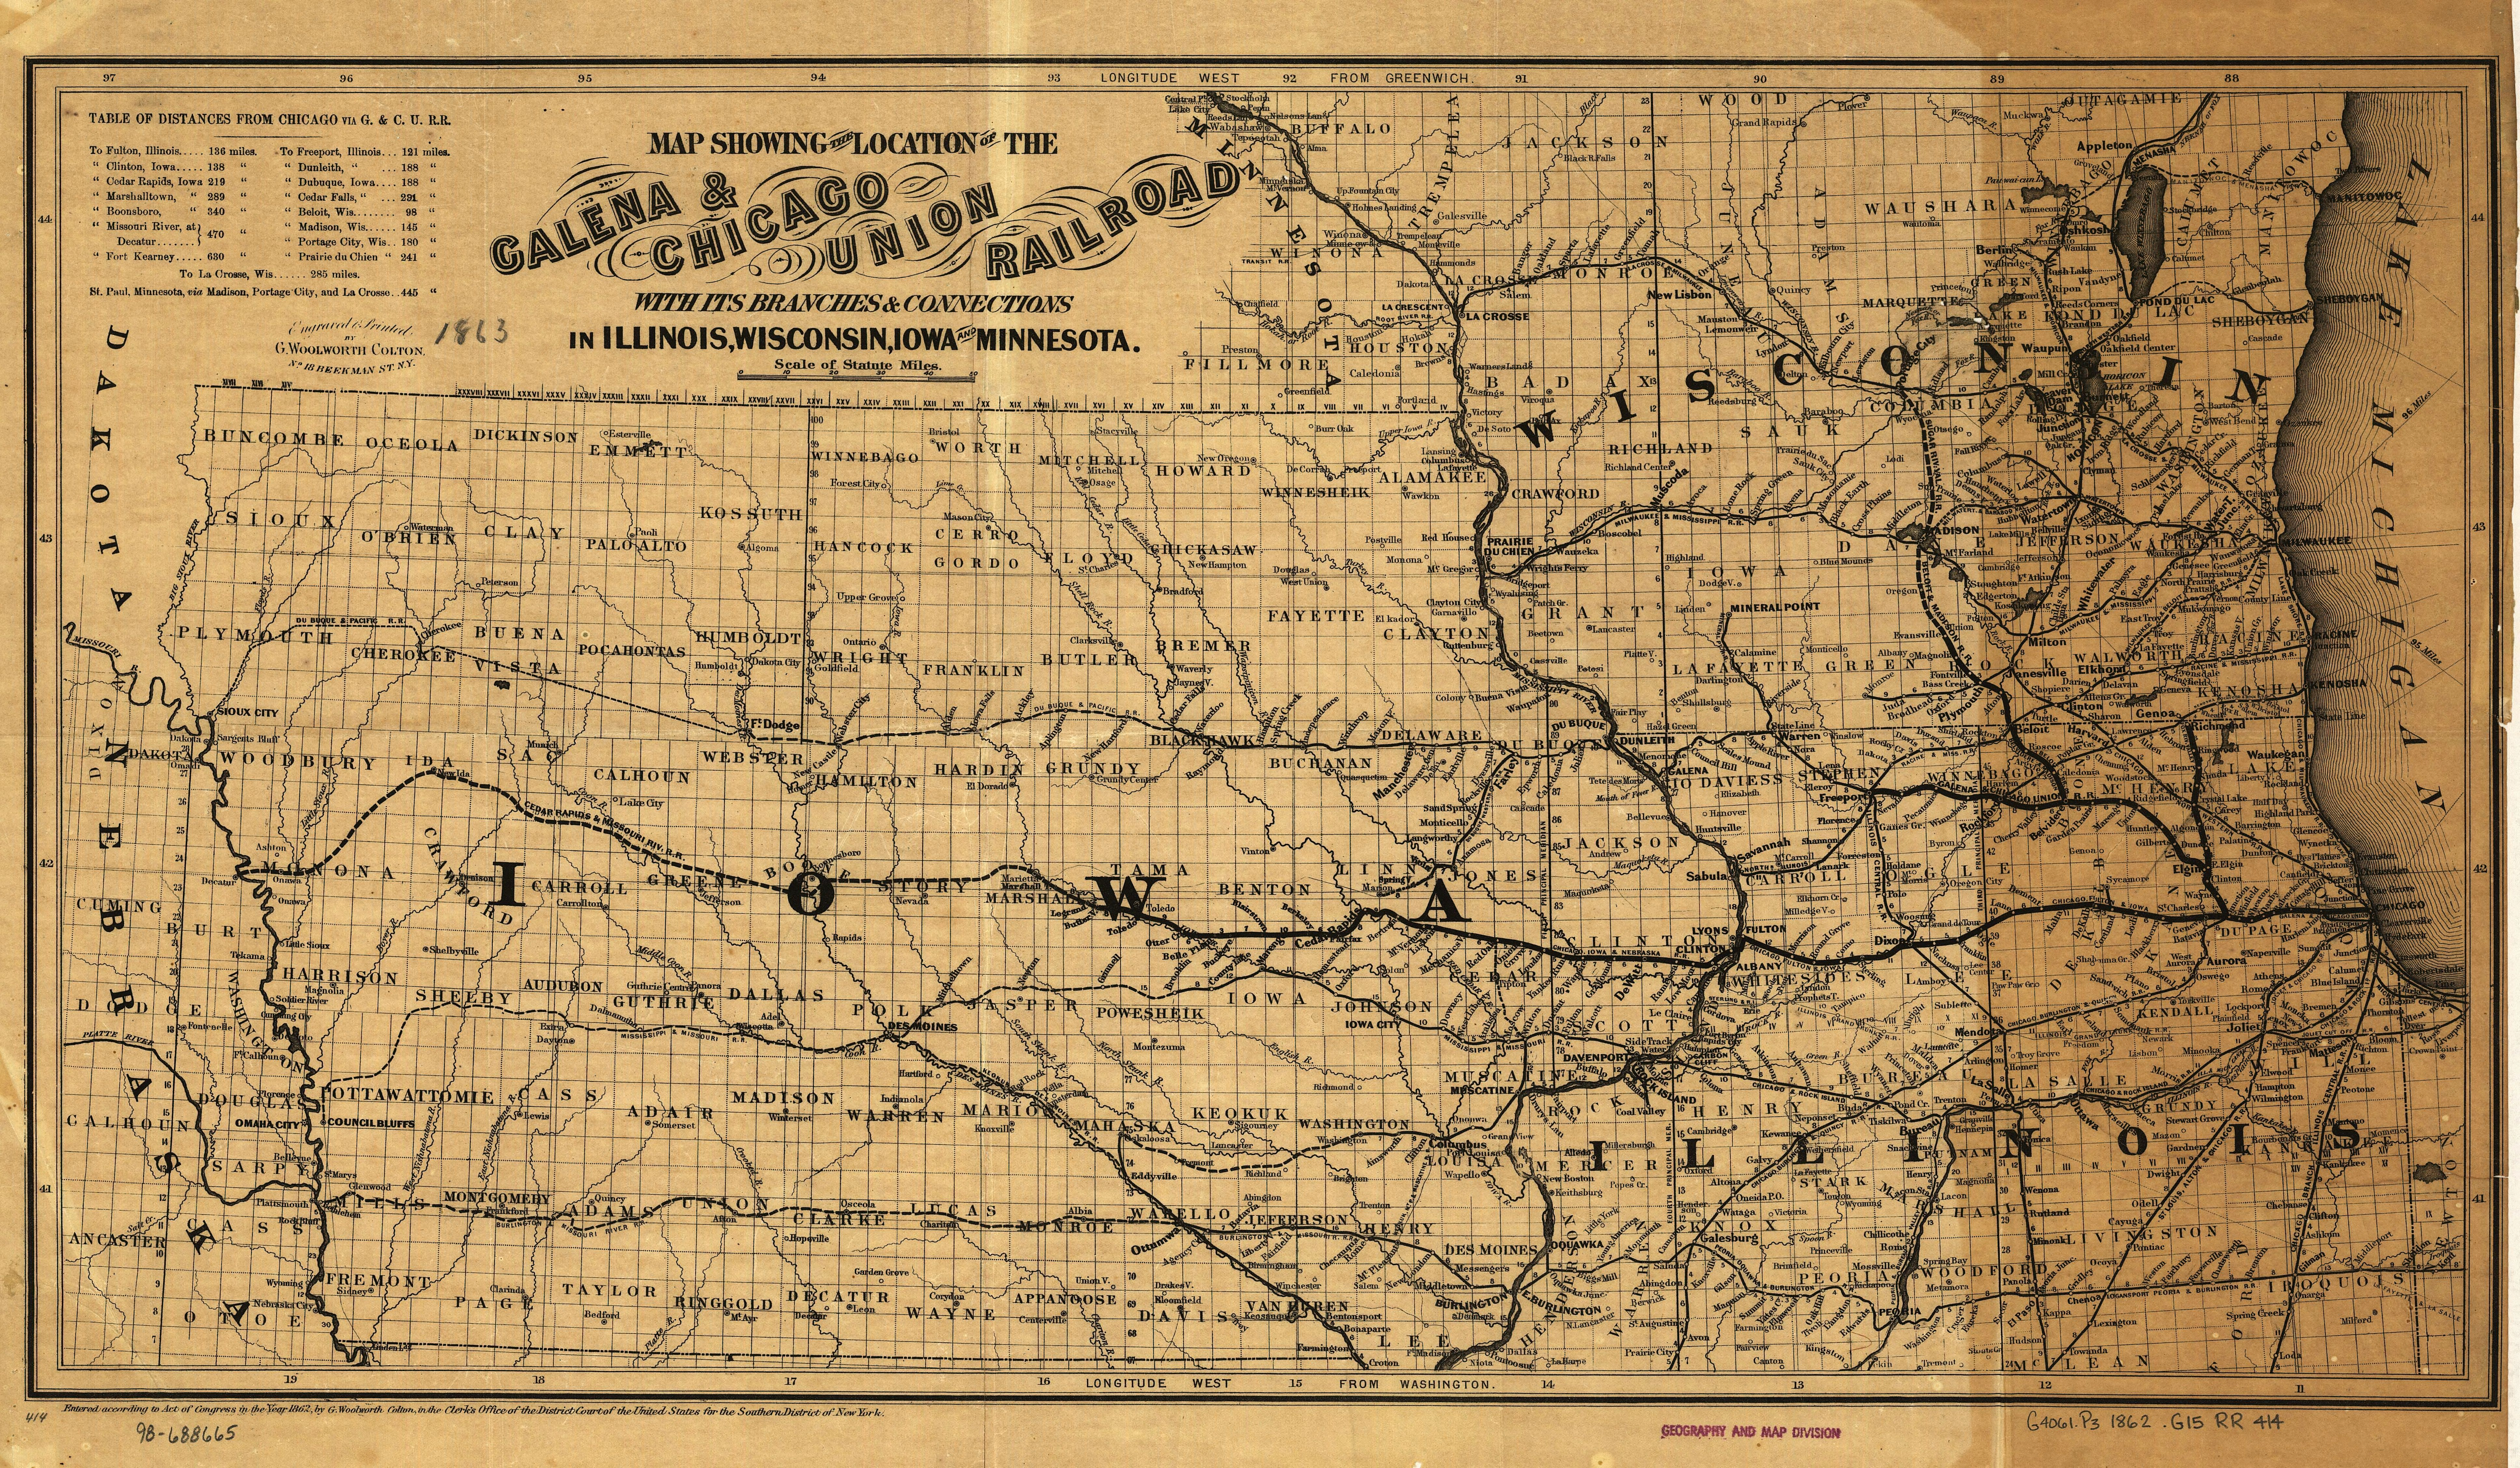 Galena and Chicago Union Railroad - Wikiwand on great northern railroad map, louisiana & arkansas railroad map, chicago, burlington and quincy railroad map, chicago & northwestern railroad map, santa fe railroad map, rock island railroad map, railroad tracks in colorado map, kansas city southern railroad map, ohio railroad map, wabash railroad map, burlington northern railroad map, soo line railroad map, amtrak map, norfolk southern railroad map, illinois railway museum map, current united states railroad map, indiana harbor belt railroad map, new york central railroad map, b&o railroad map, galena and chicago union railroad map,